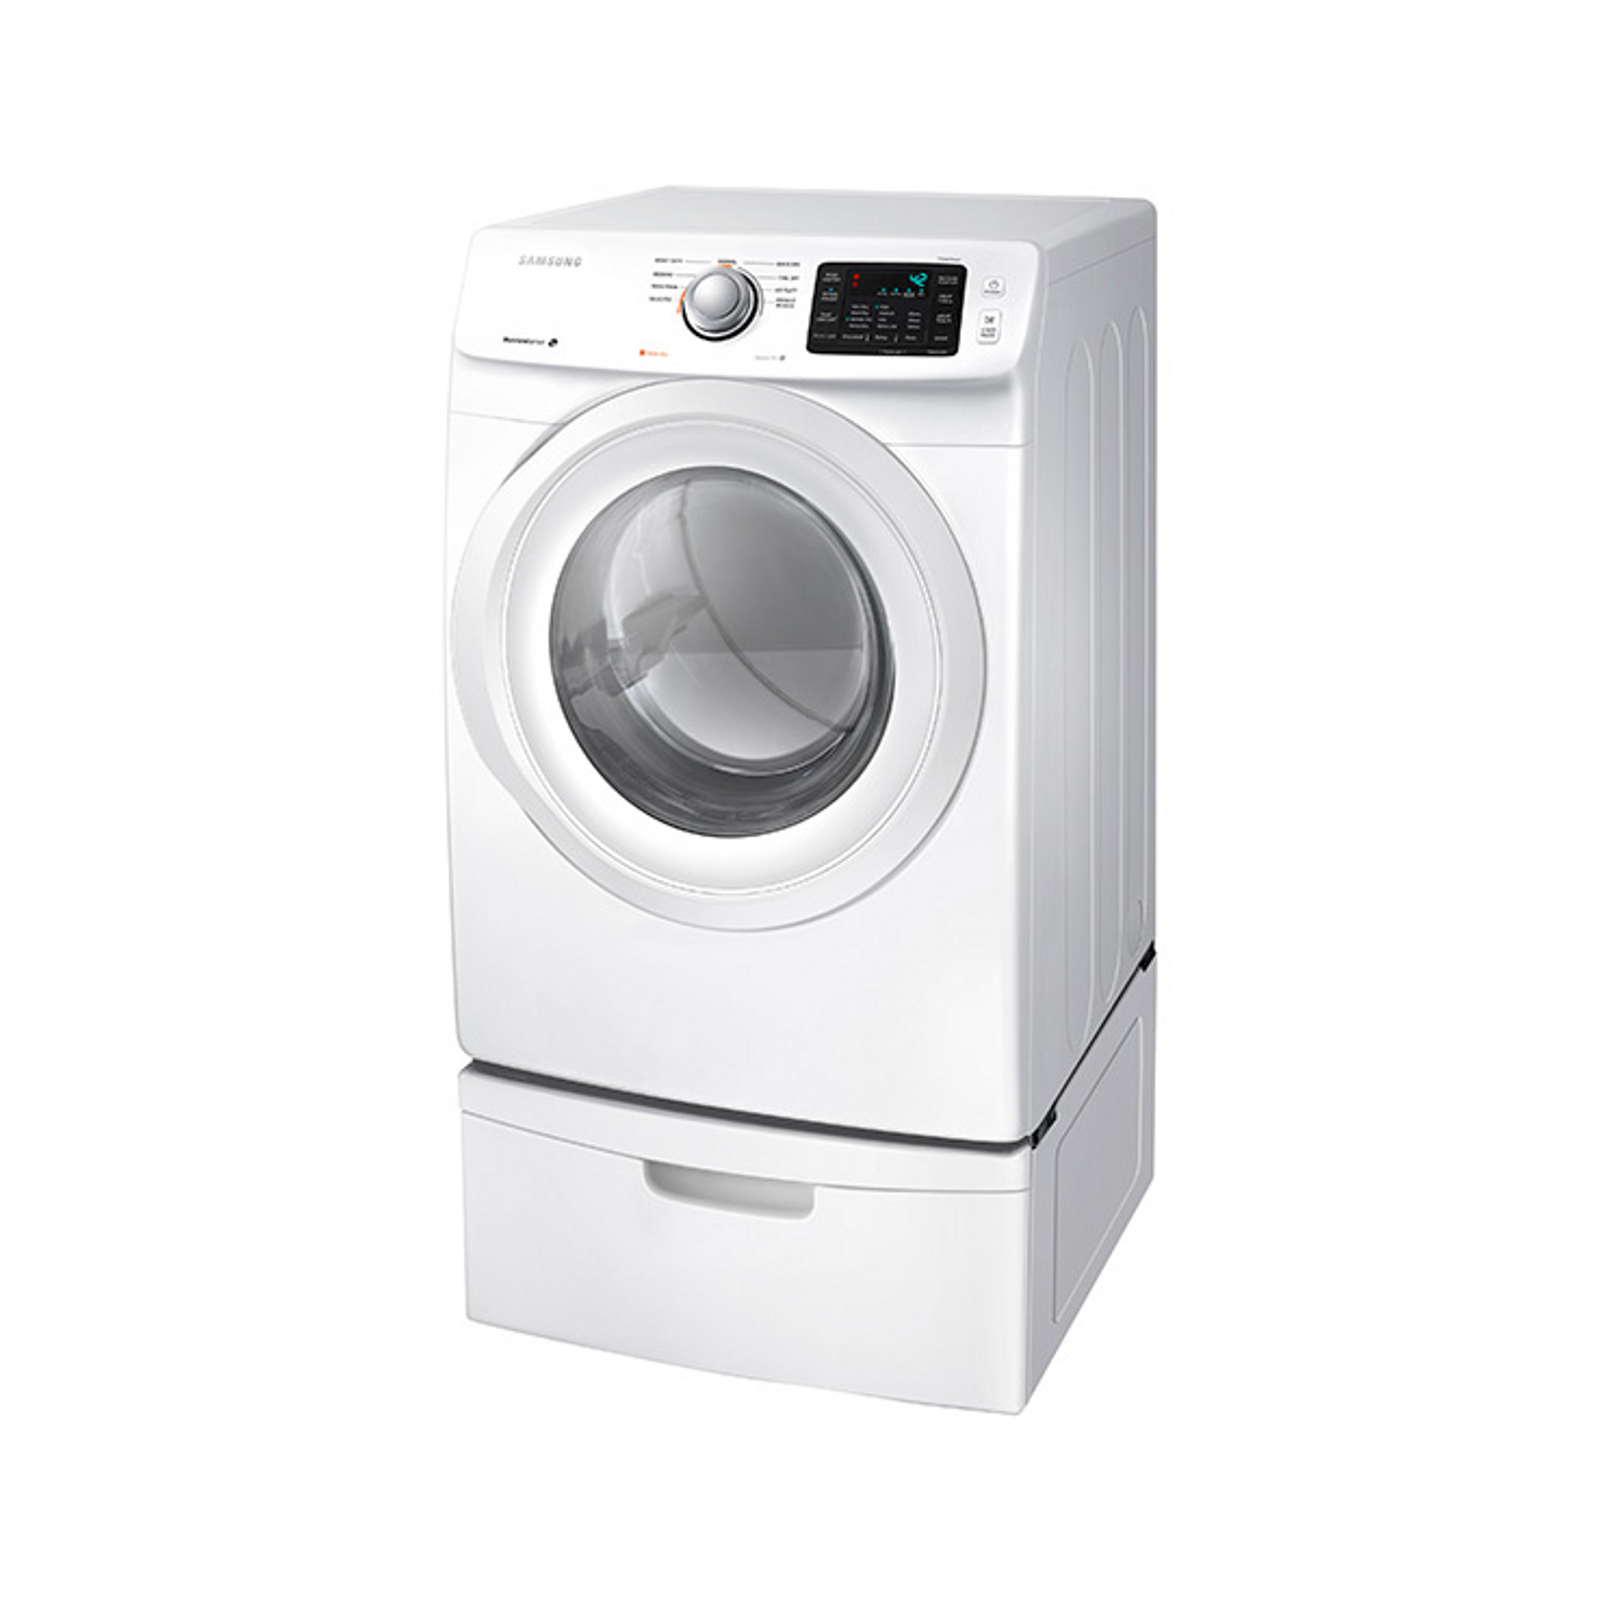 Samsung DV42H5000GW 7.5 cu. ft. Gas Dryer - White